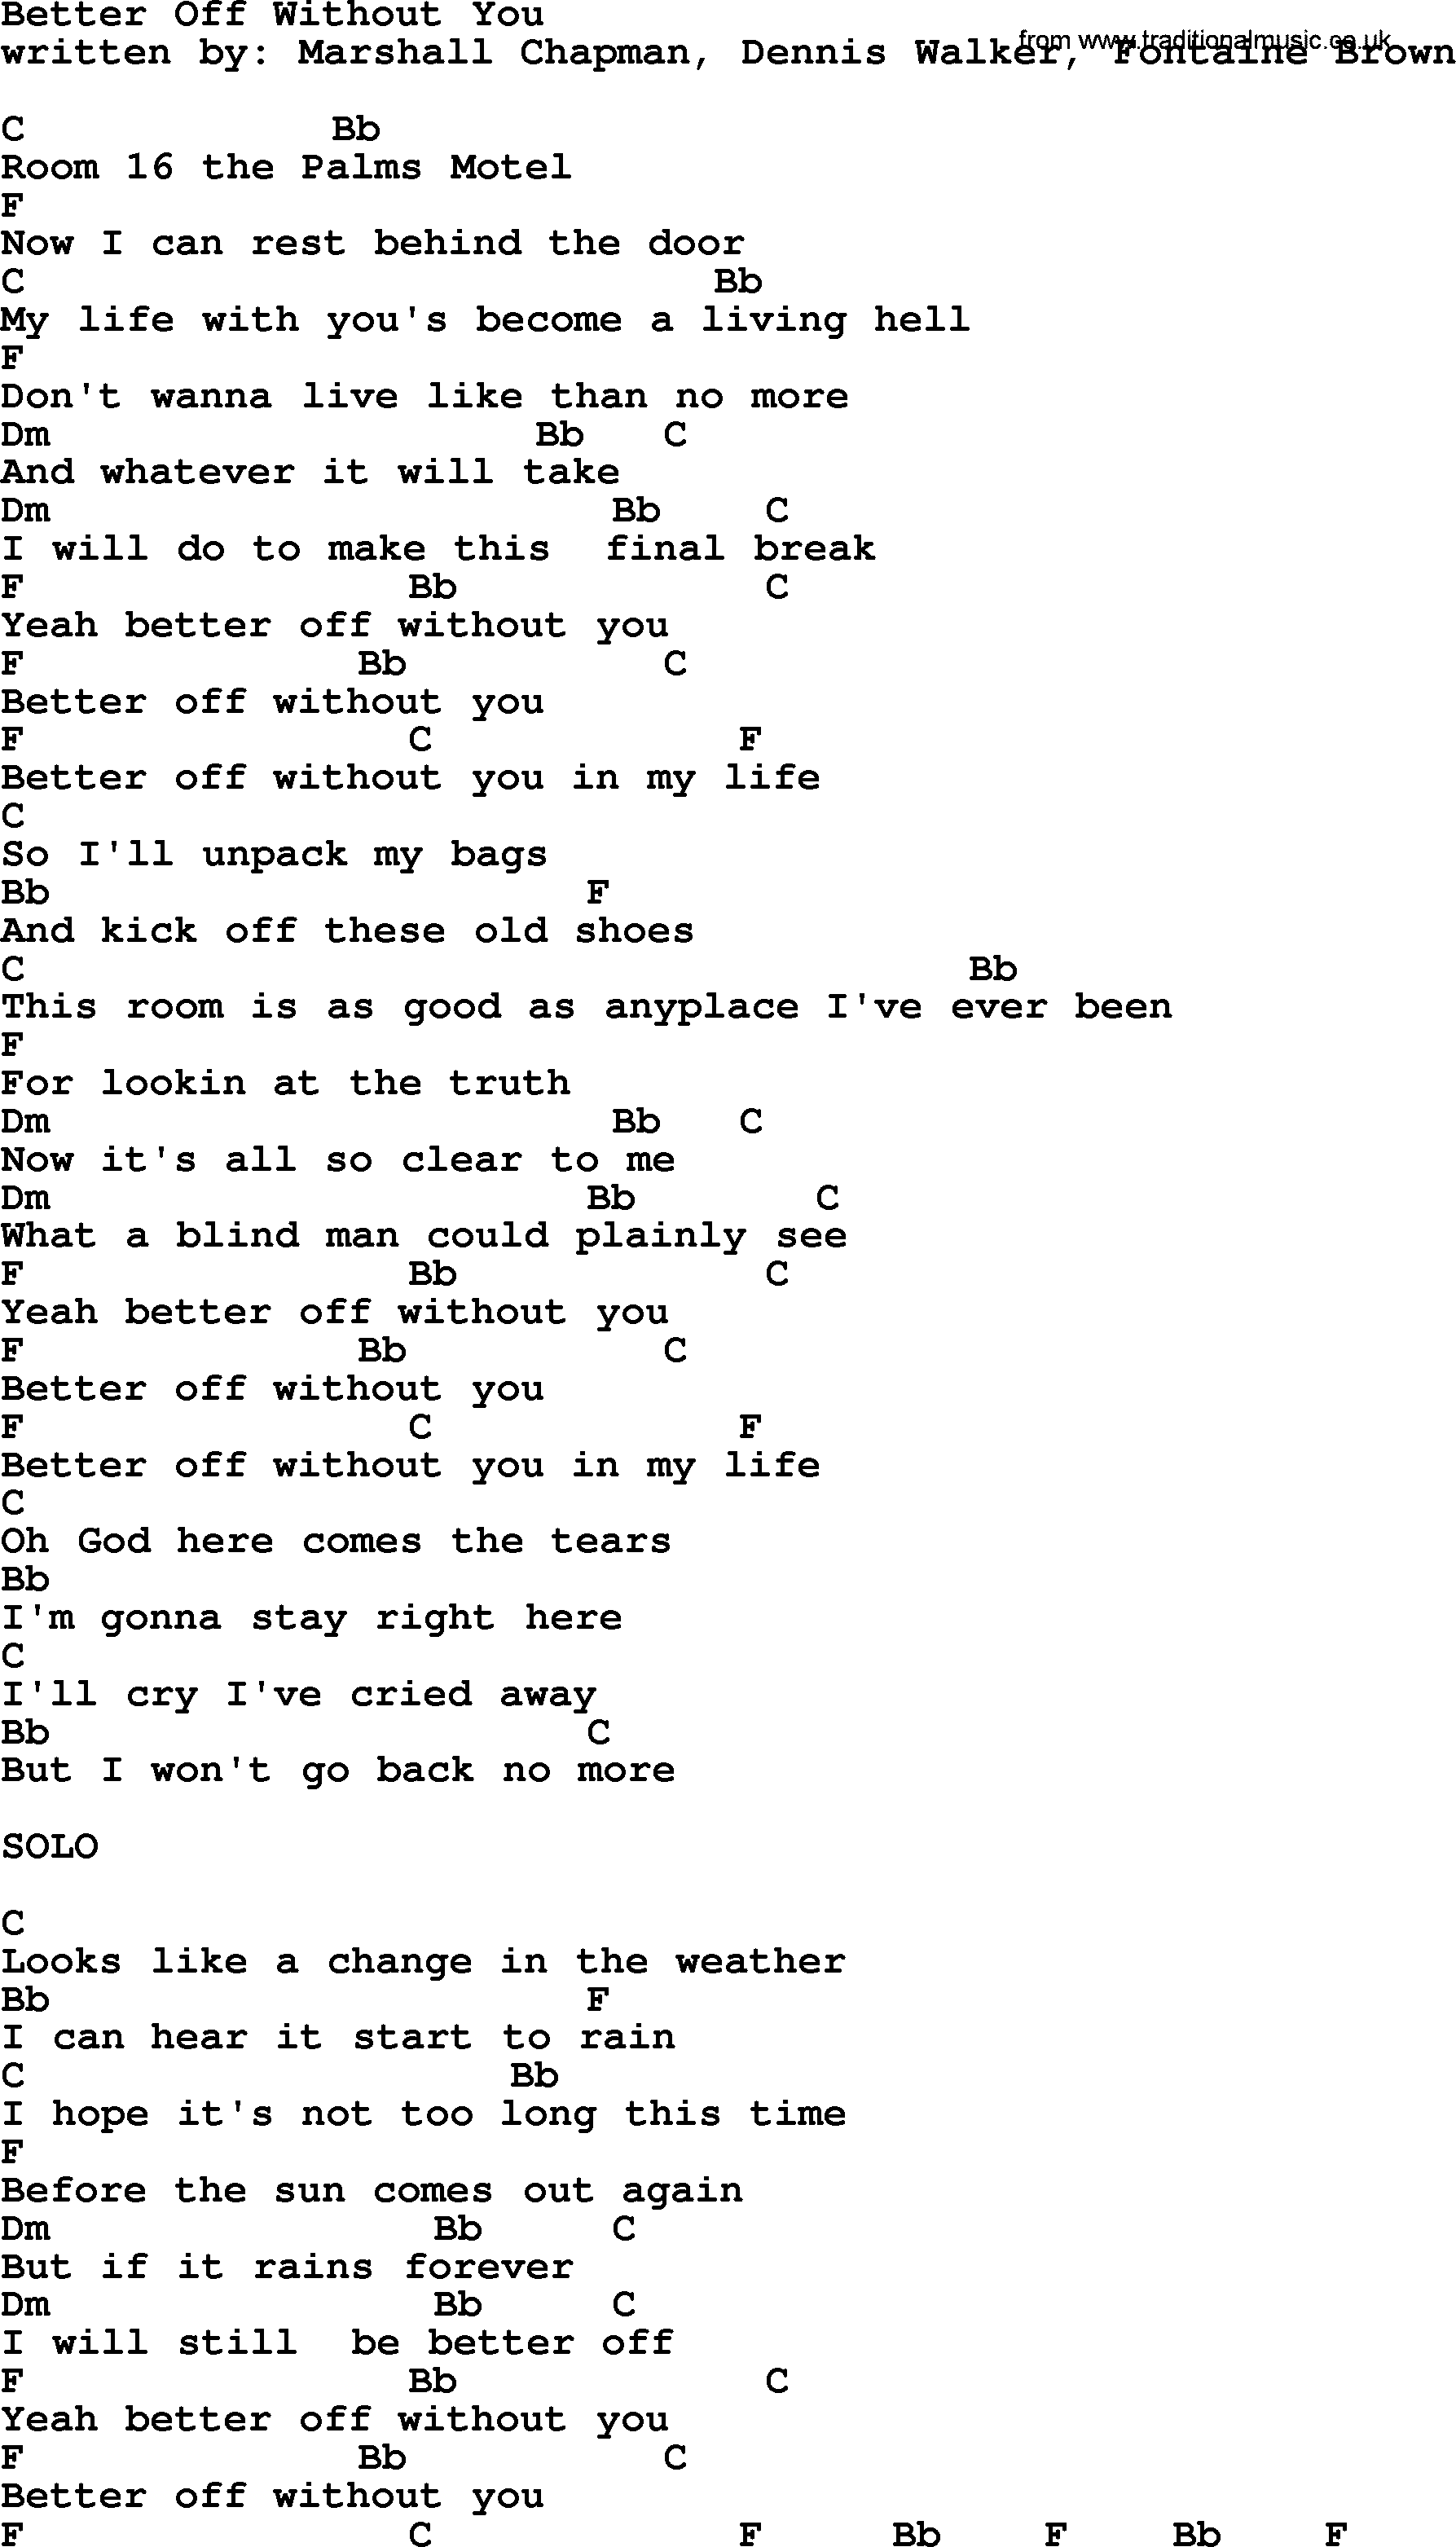 Emmylou Harris Song Better Off Without You Lyrics And Chords